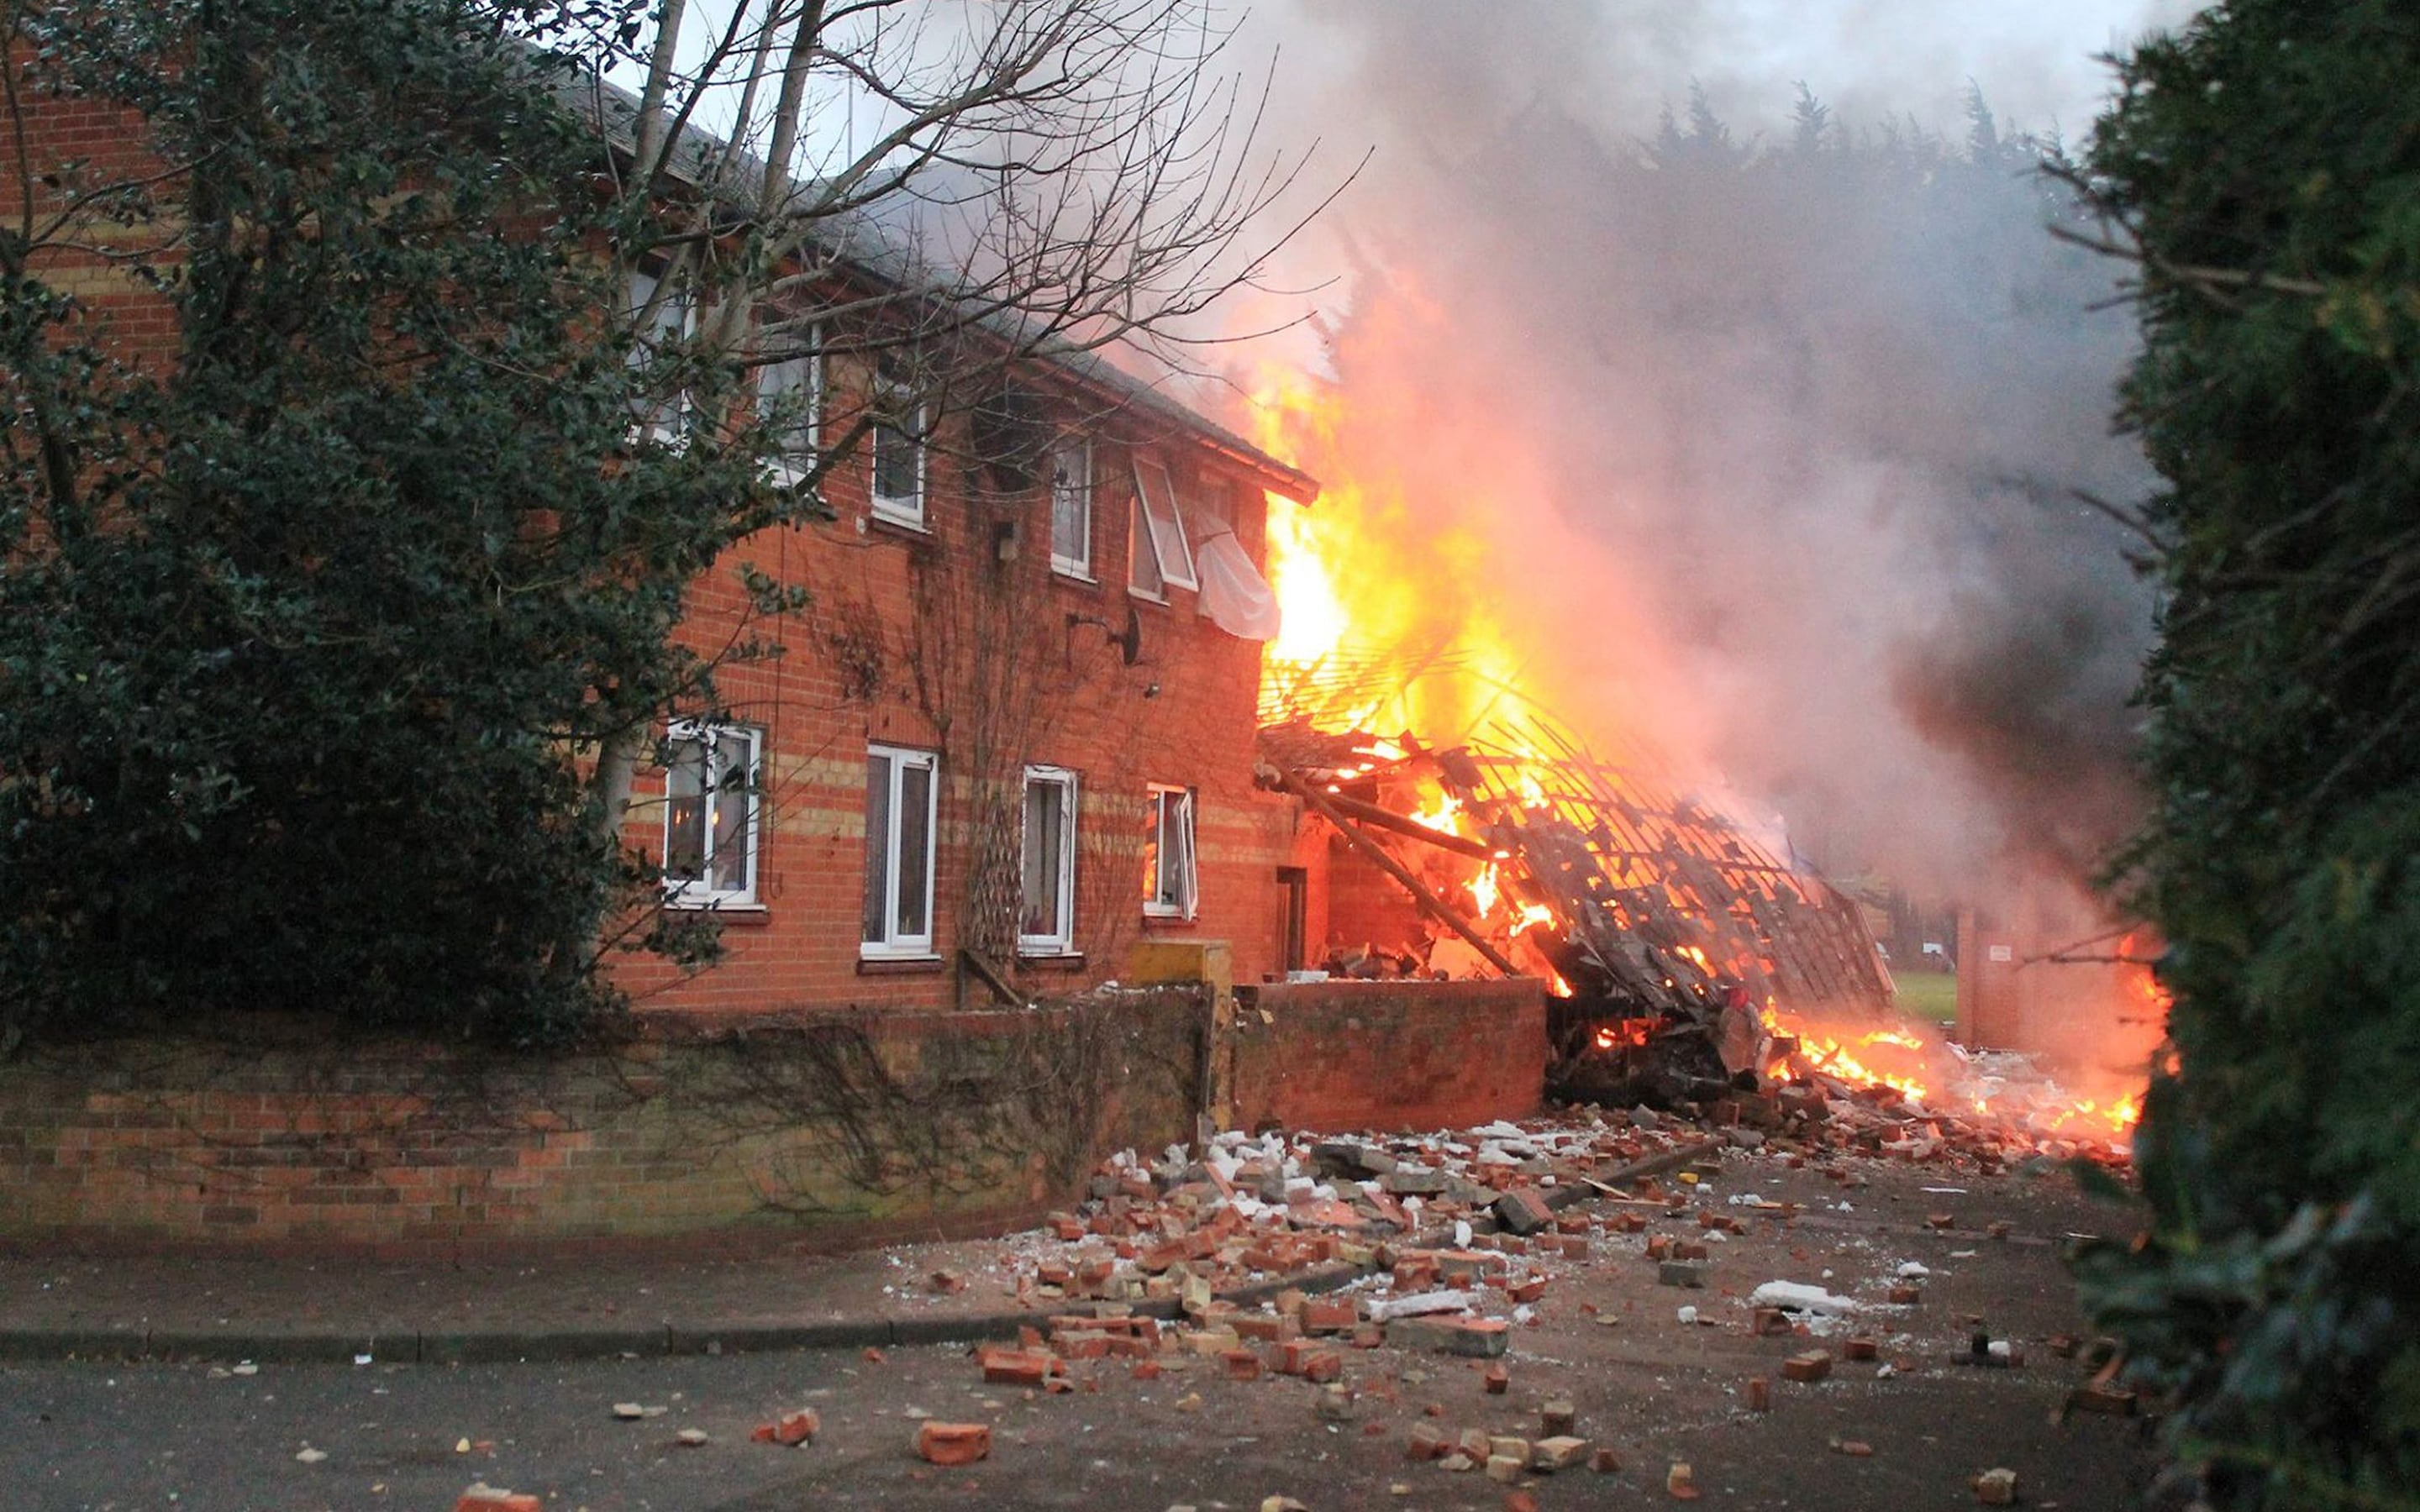 Oxford explosion One person remains missing after